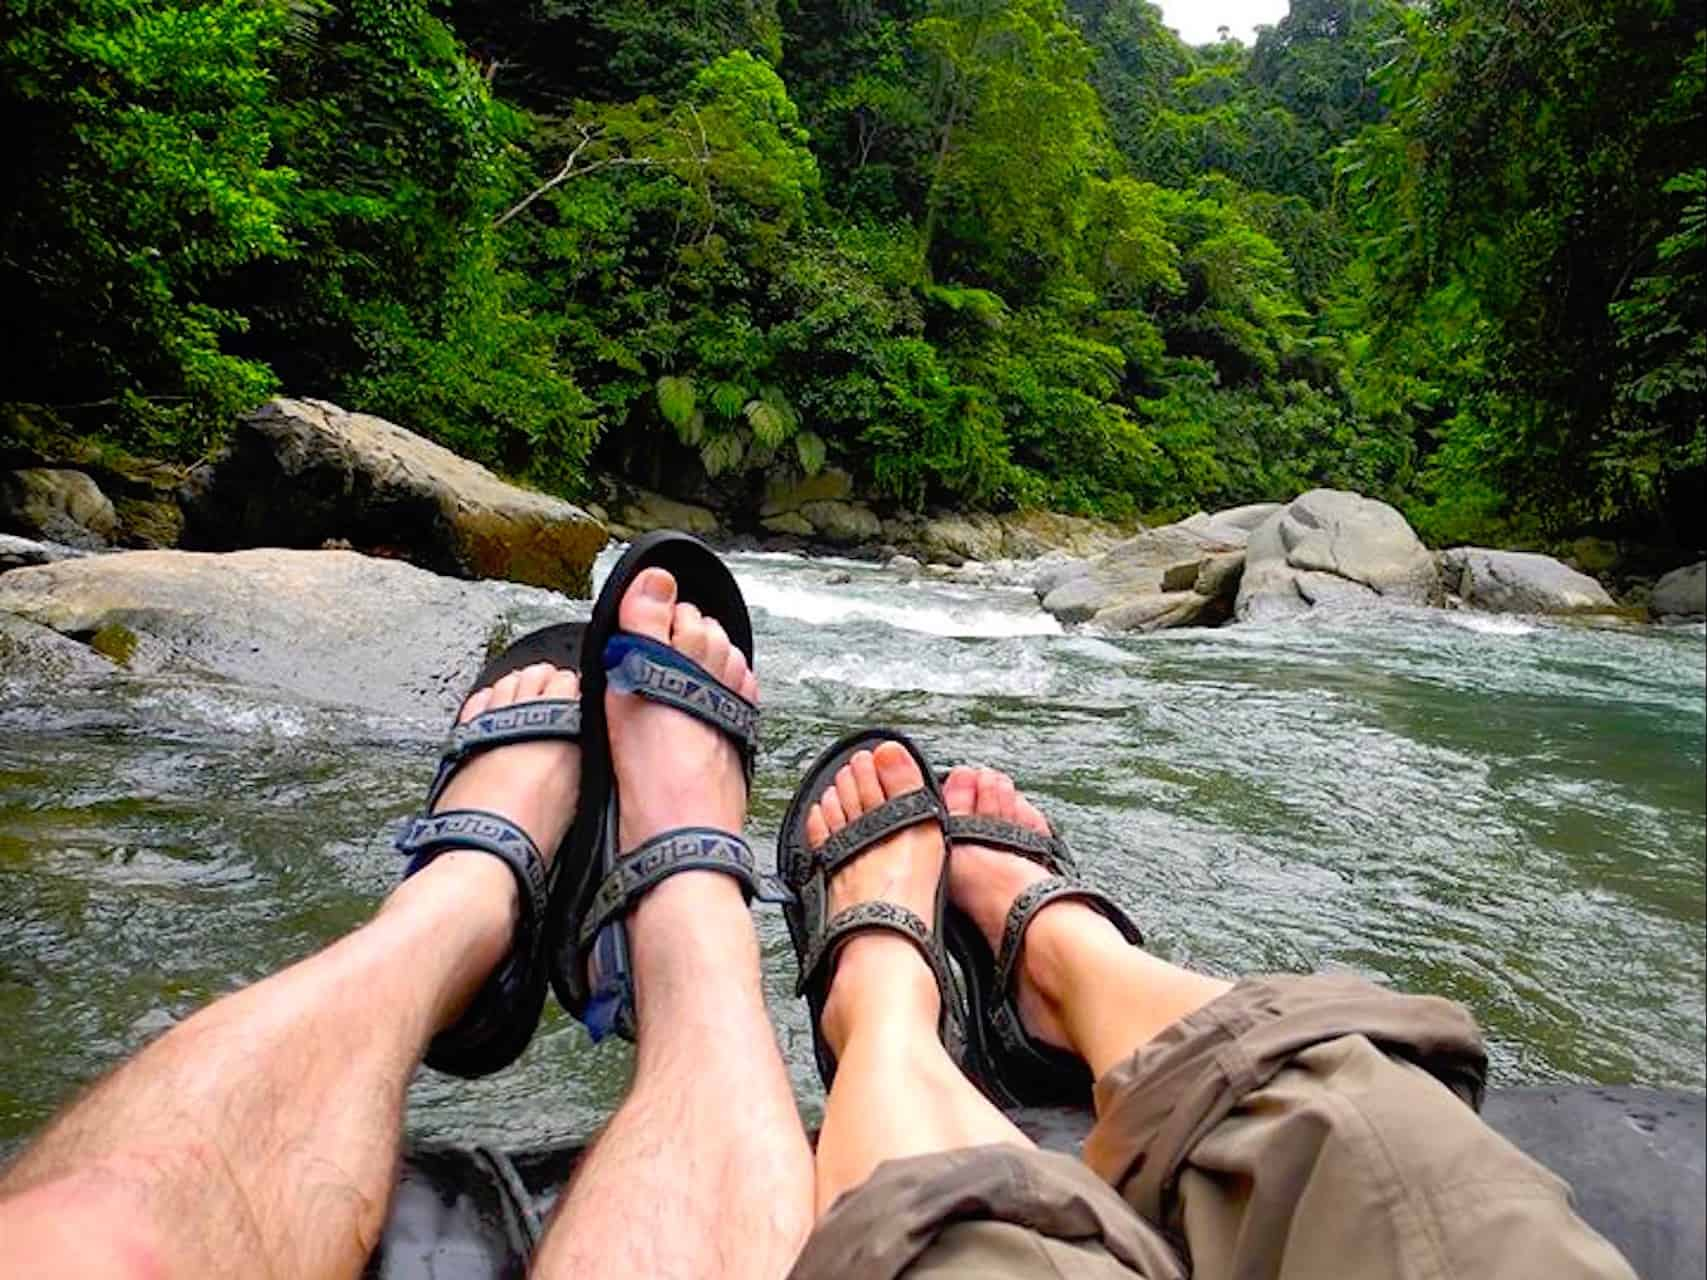 TUBE RAFTING - BUKIT LAWANG JUNGLE TREKKING - 1-DAY TREK - JUNGLE VIEW HIKE - SUMATRA ECOTRAVEL